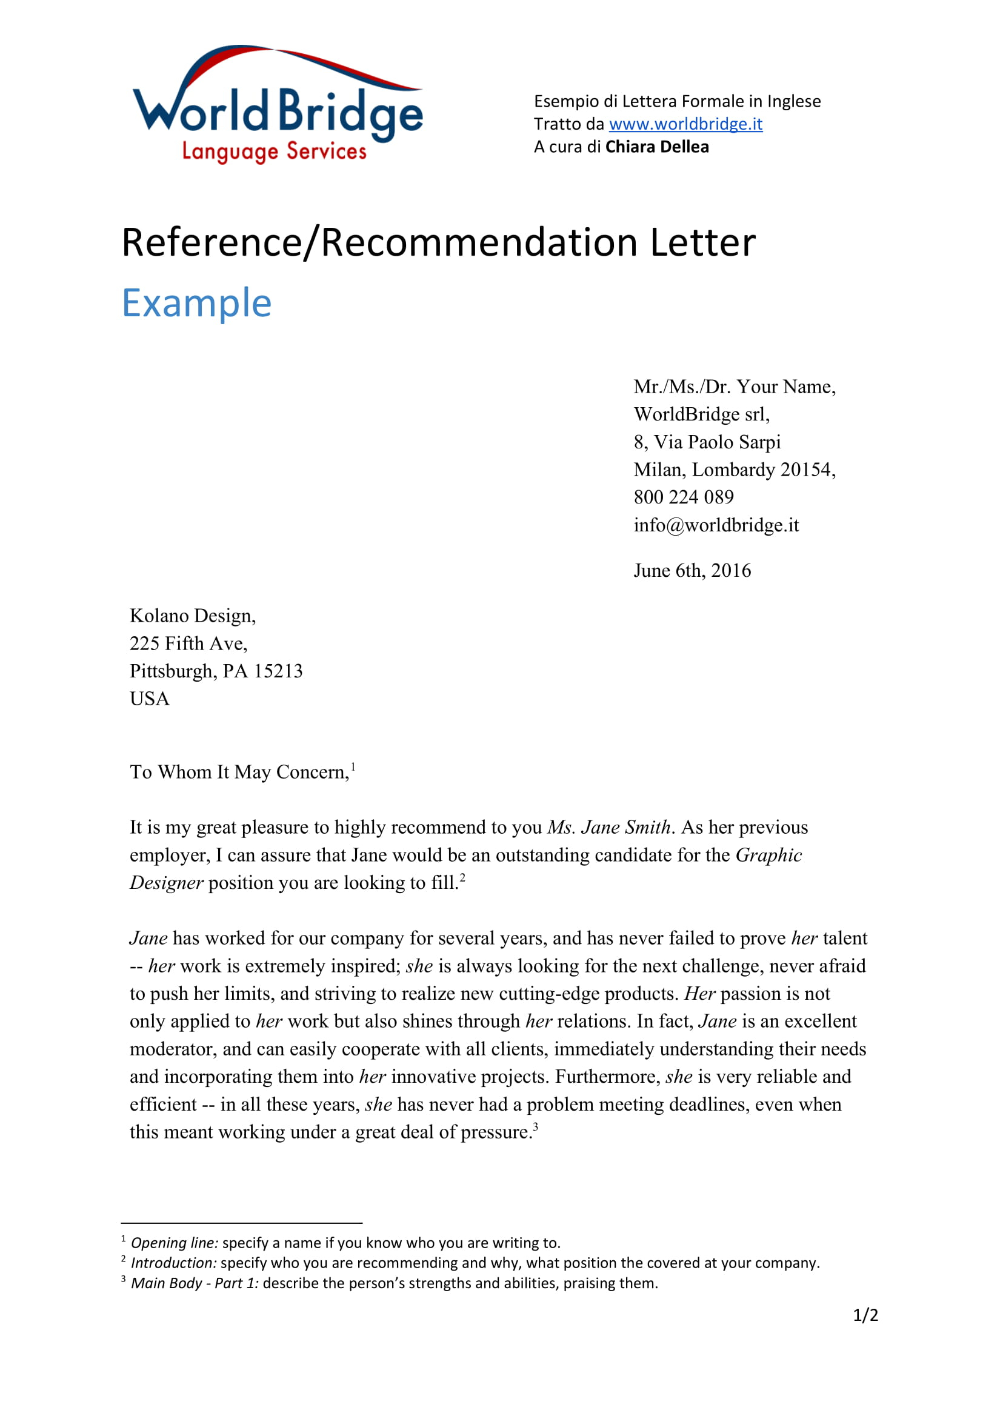 9+ Reference Letter From A Previous Employer Examples